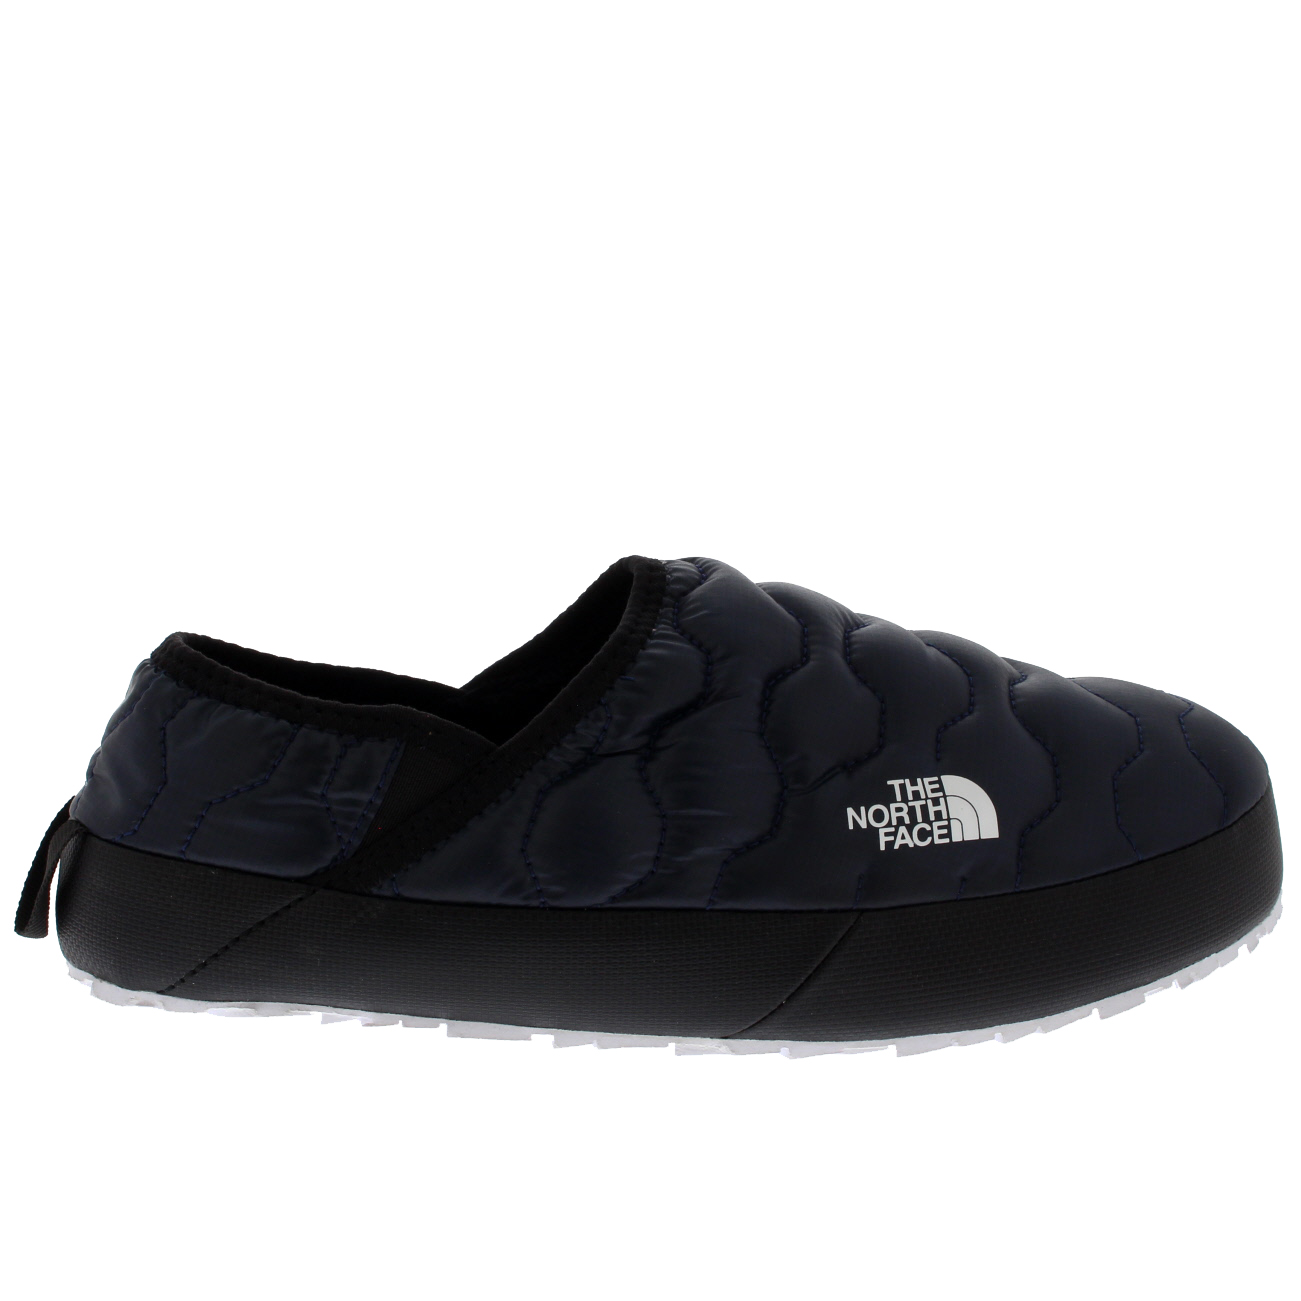 The North Face ThermoBall Traction Mule IV Men's